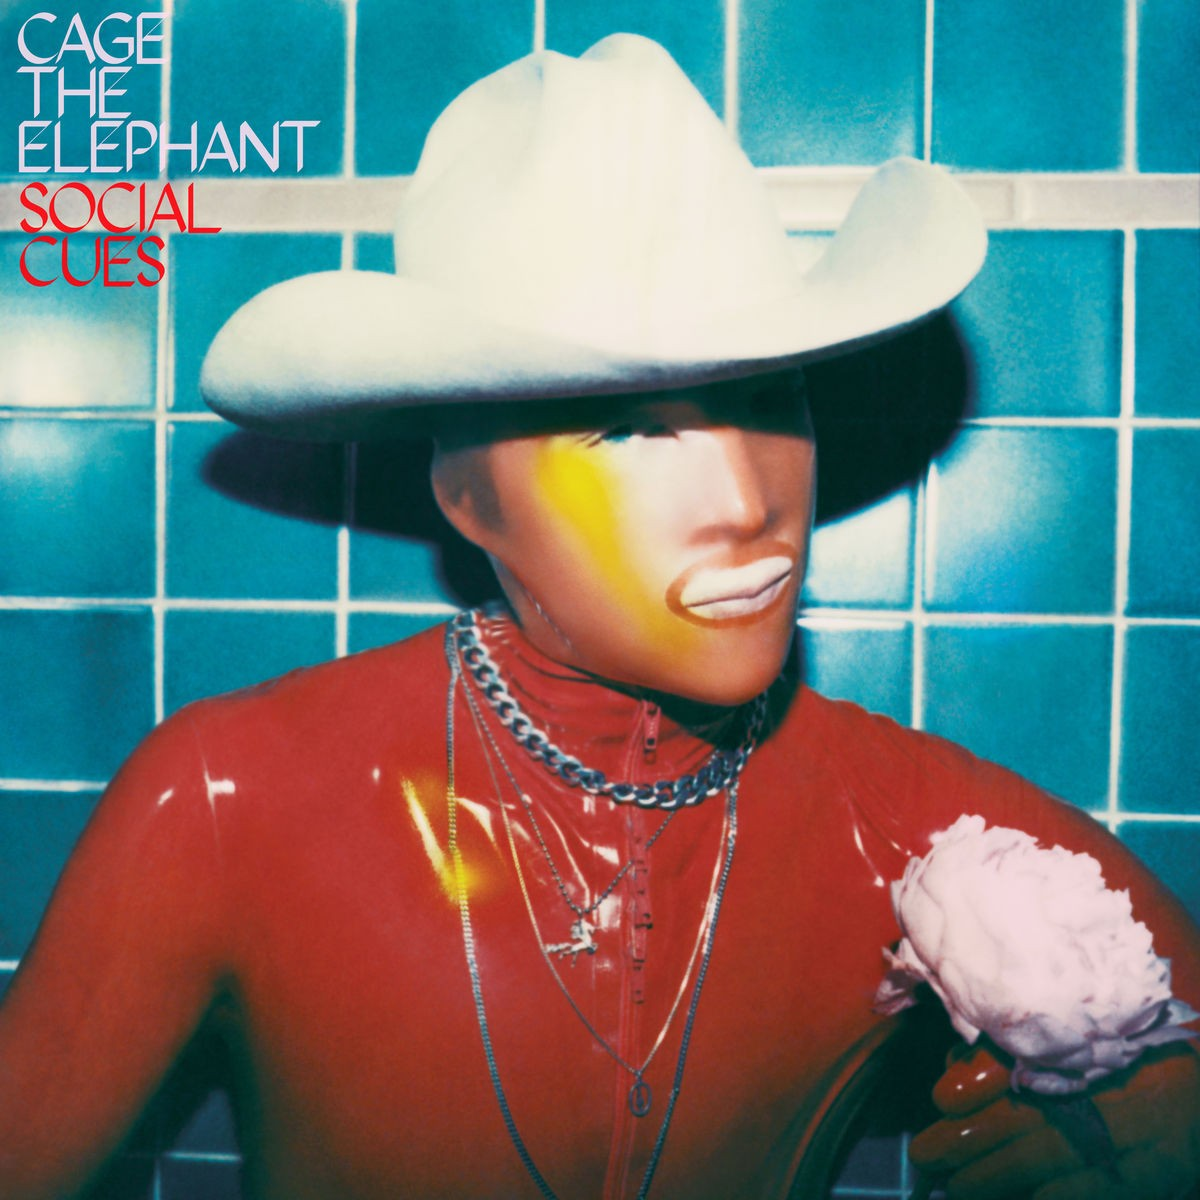 Cage The Elephant - Social Cues VINYL - 19075927921